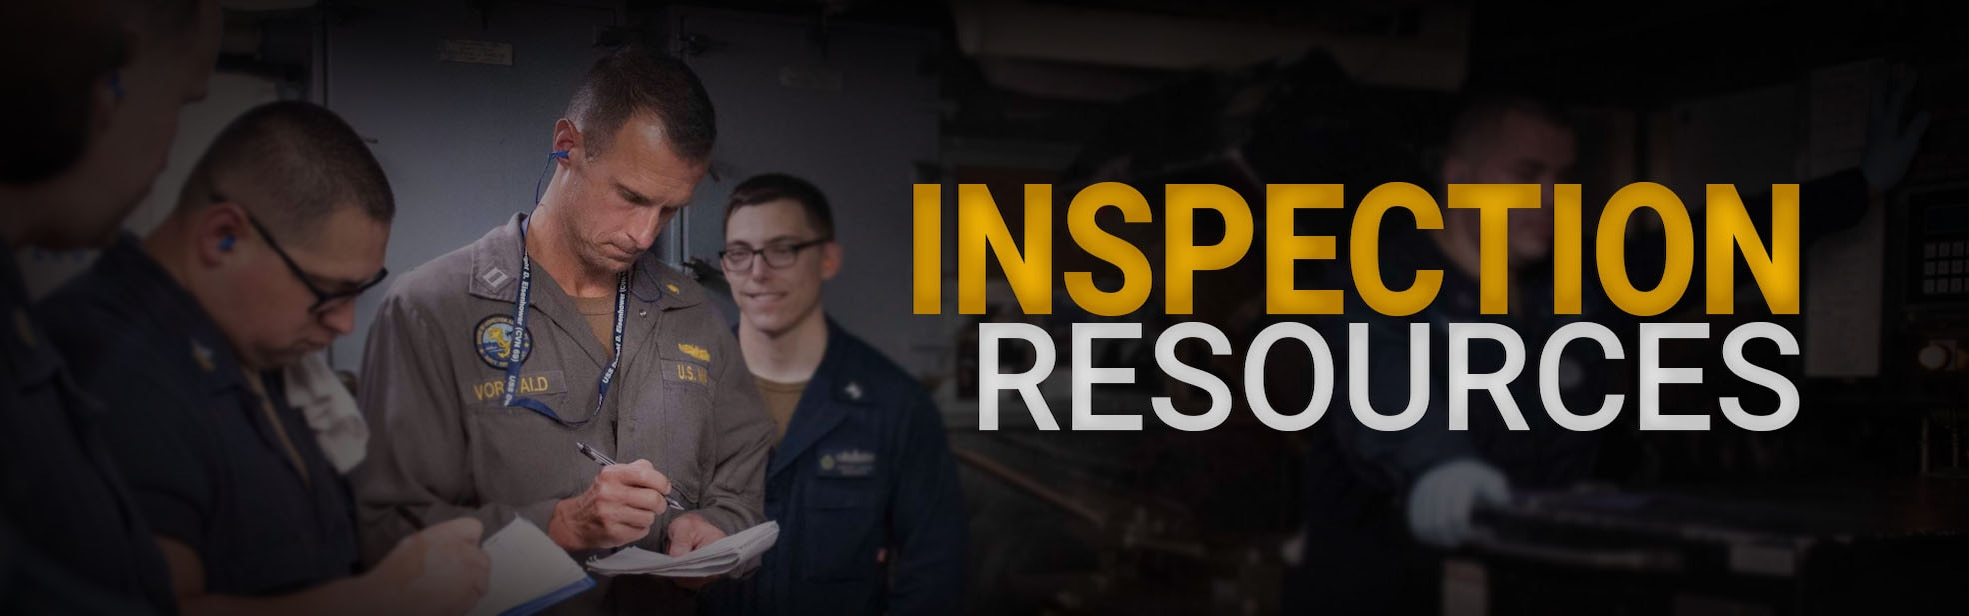 Inspection Resources Banner